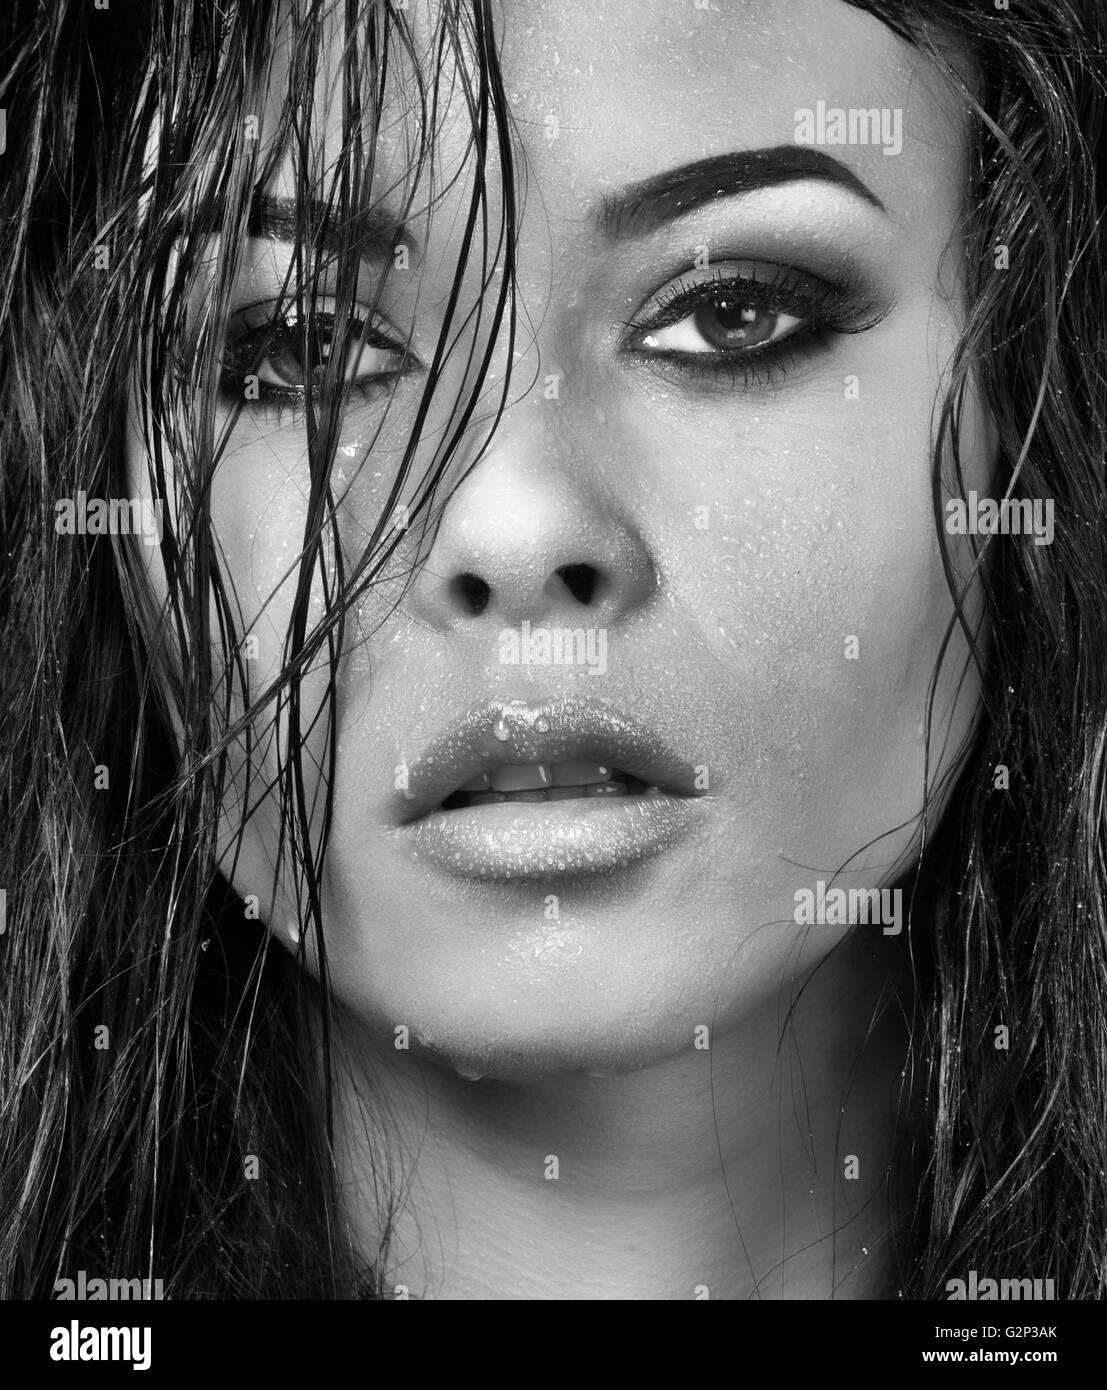 black and white wet faced beautiful model with long hair